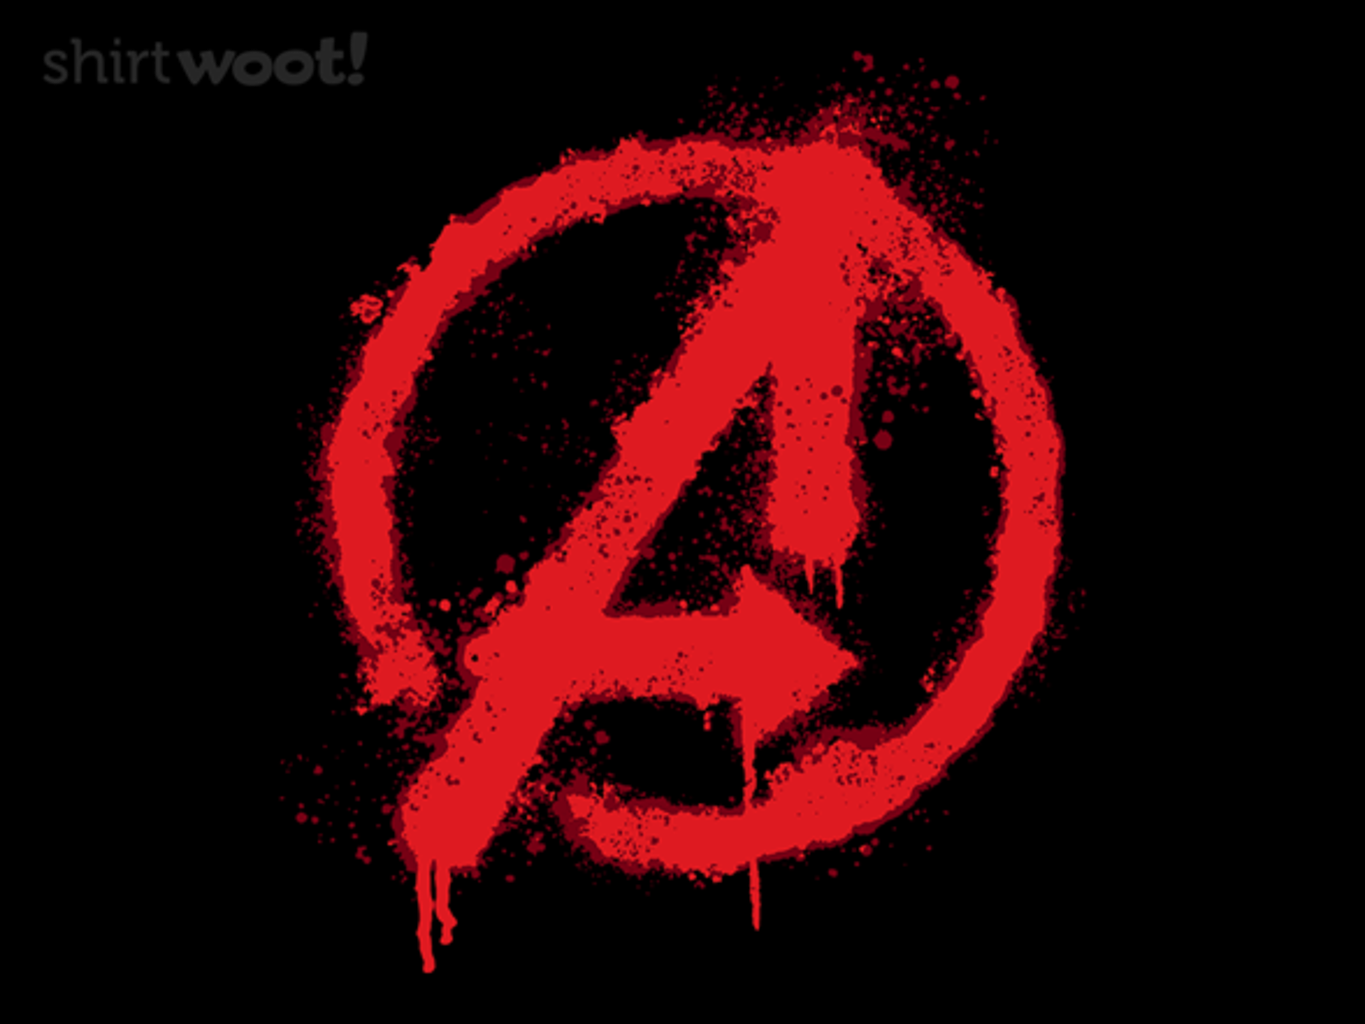 Woot!: Anarchy Avenger